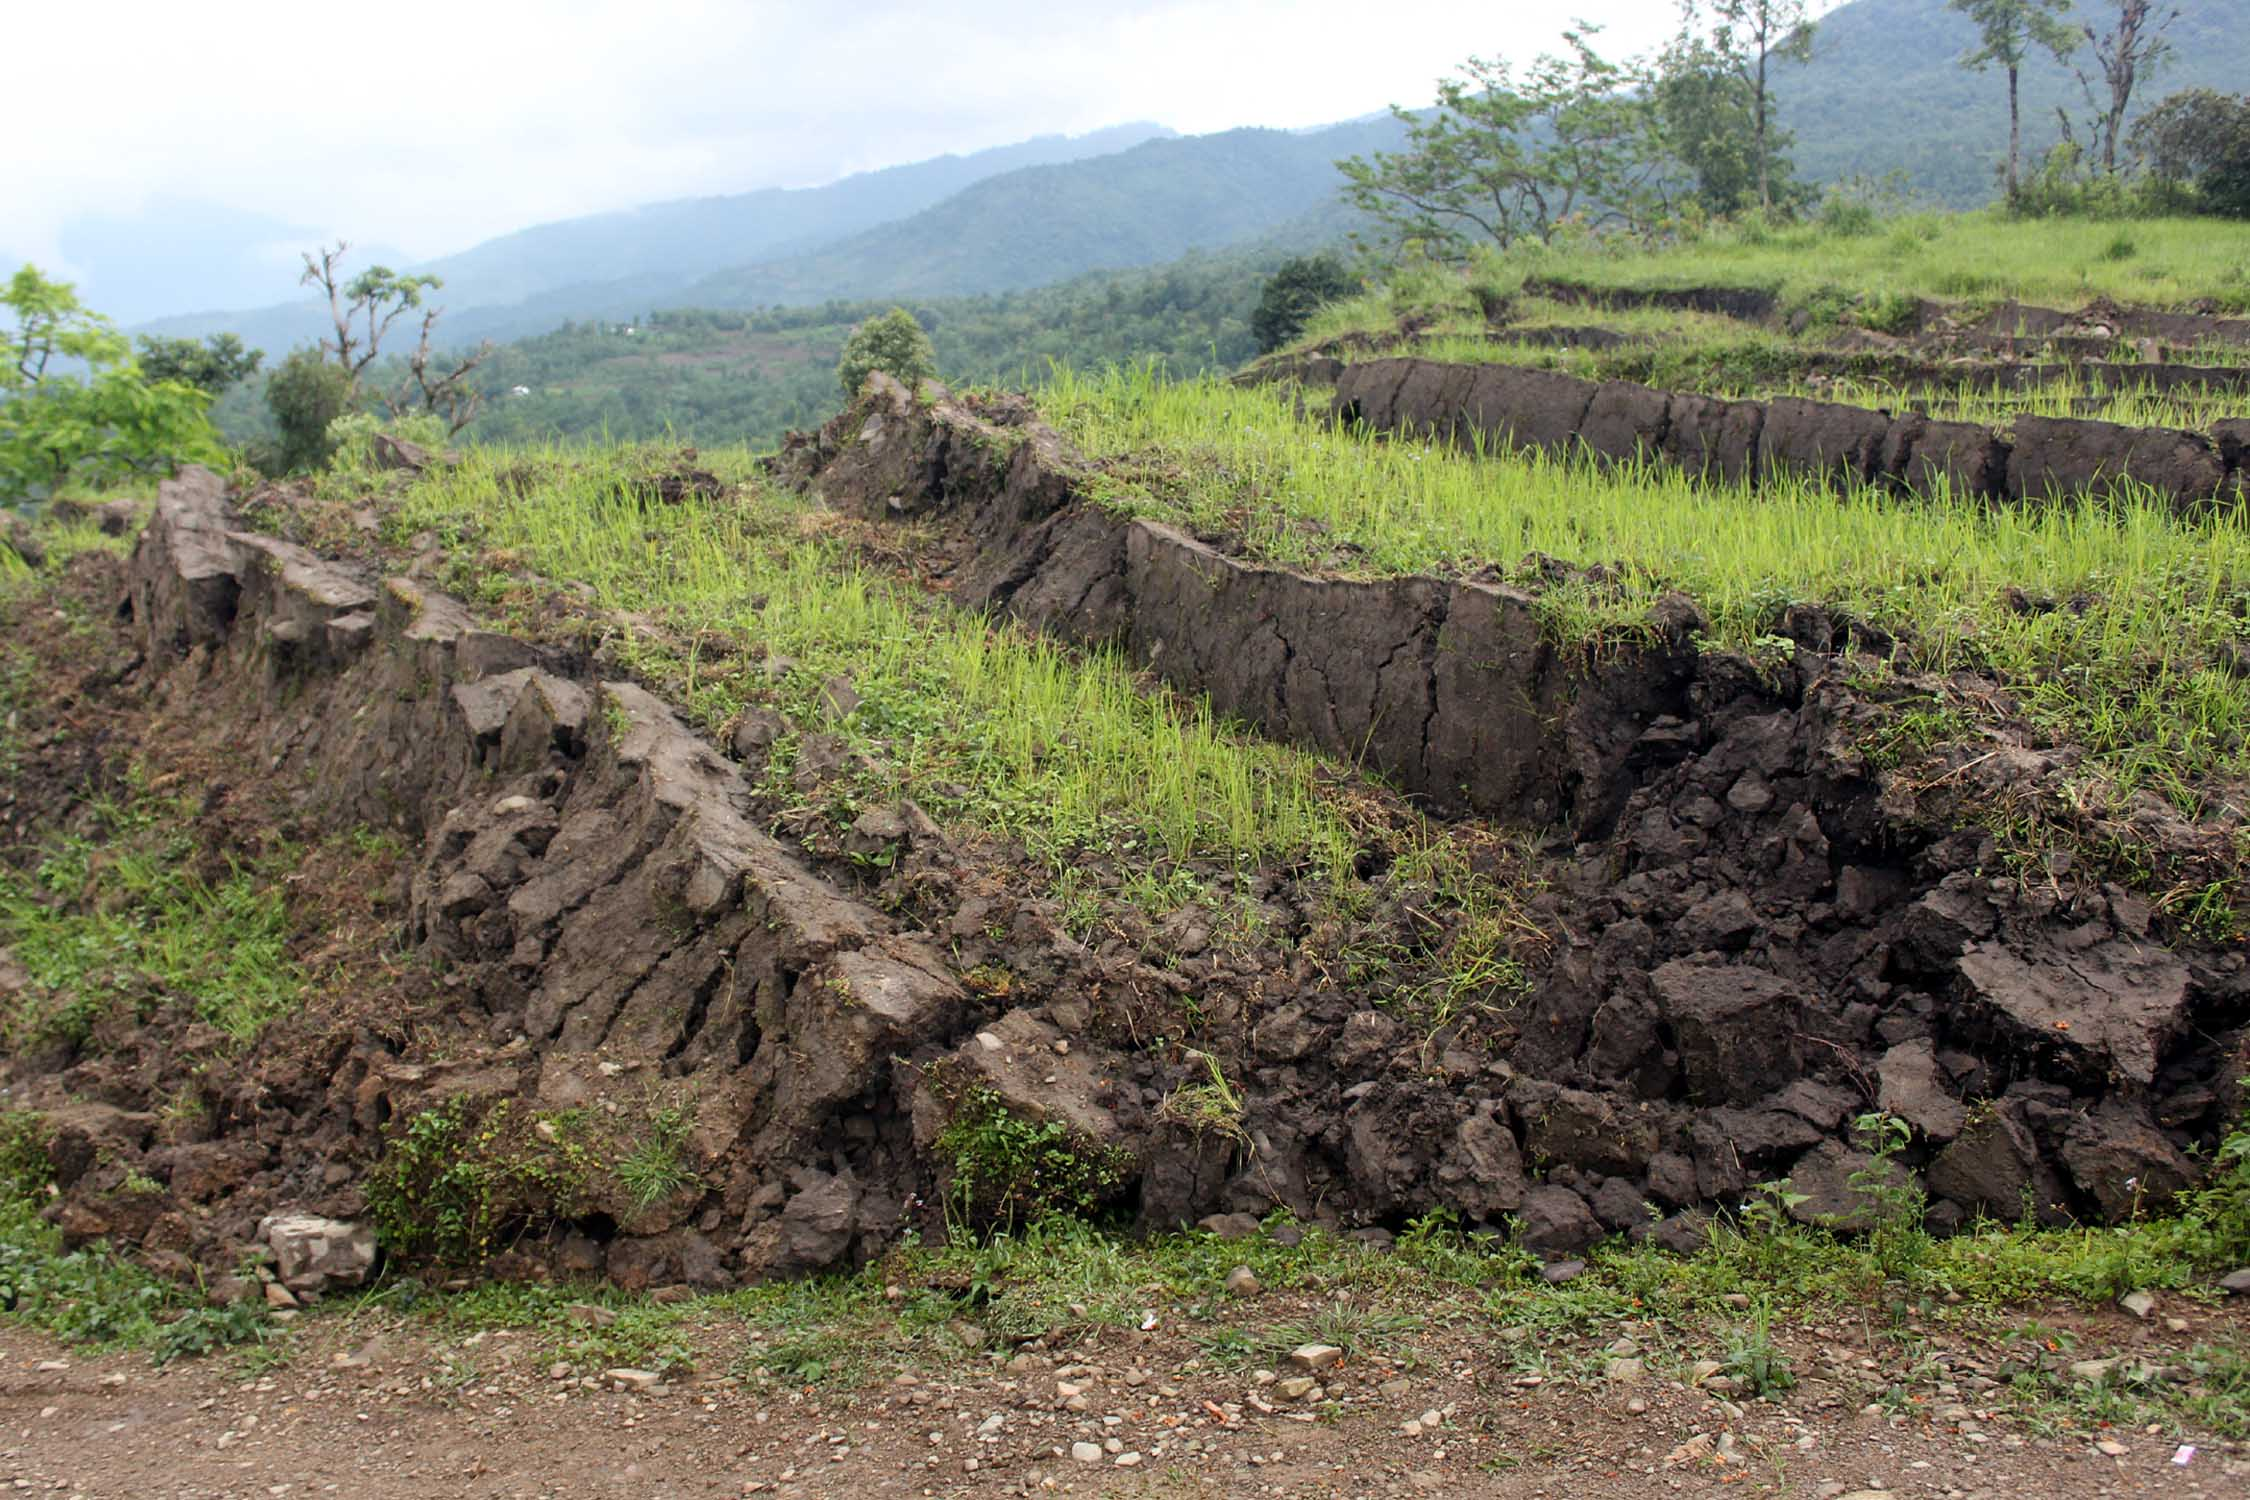 Sinking paddy fields in Kalikhola village.